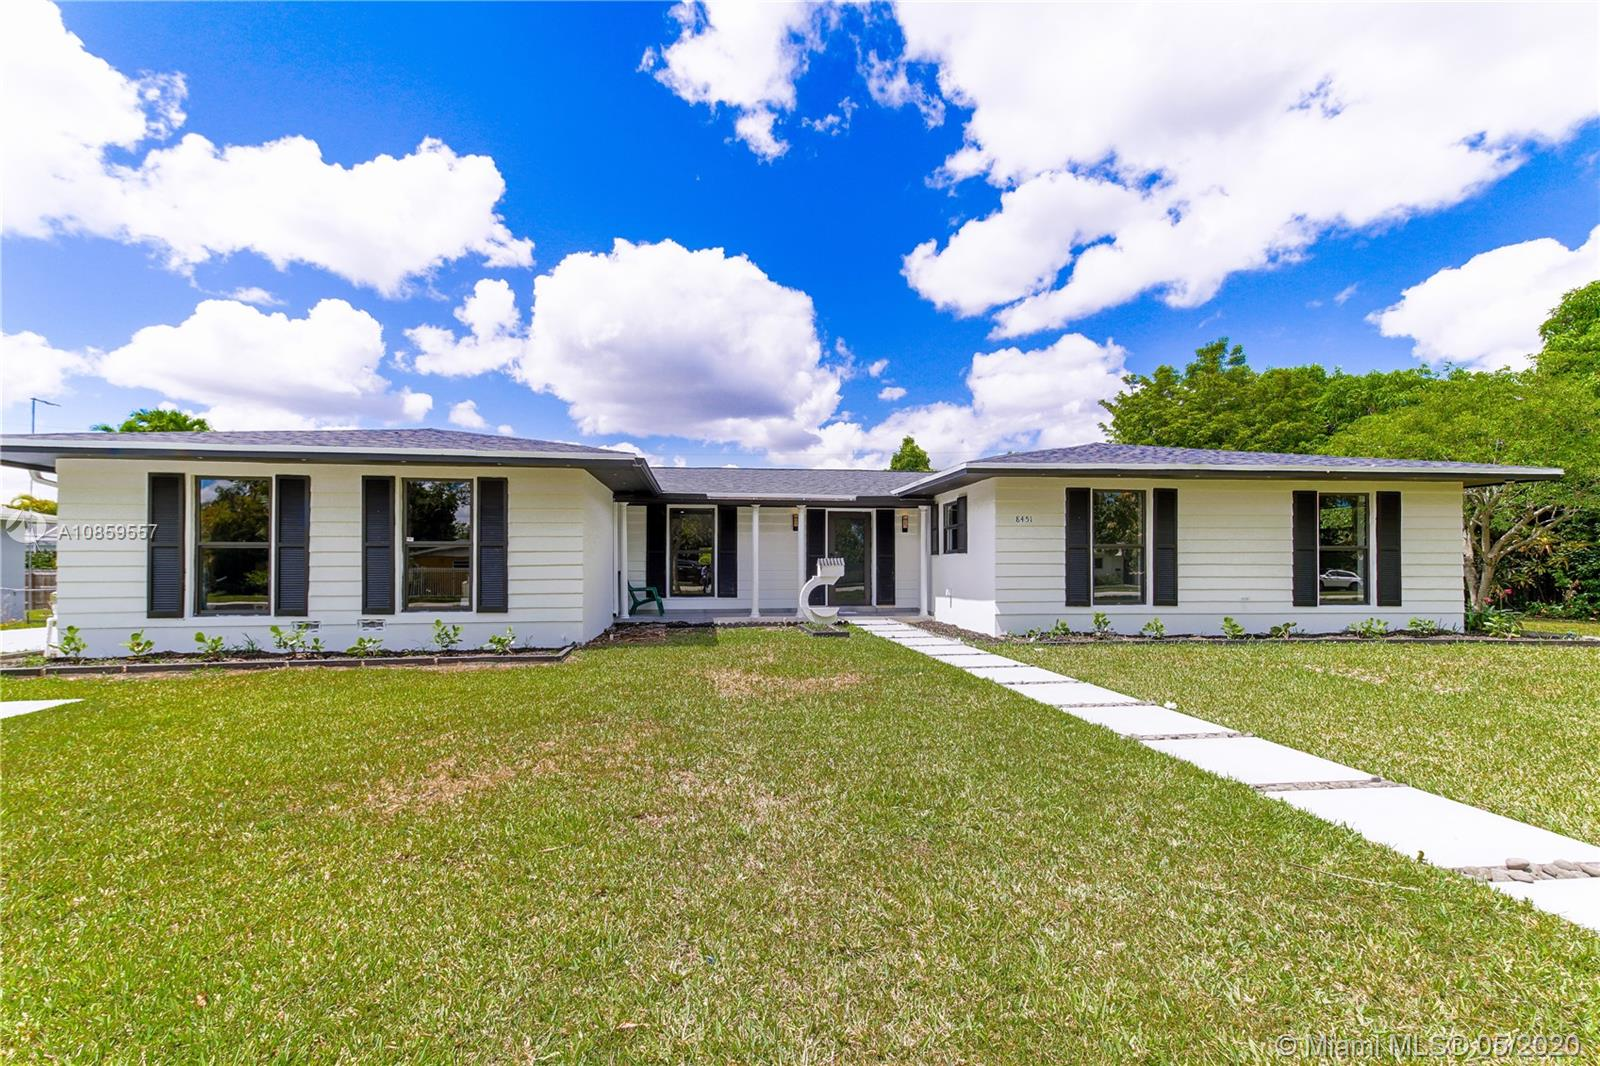 8451 SW 152nd St, Palmetto Bay, Florida 33157, 4 Bedrooms Bedrooms, ,2 BathroomsBathrooms,Residential,For Sale,8451 SW 152nd St,A10859557